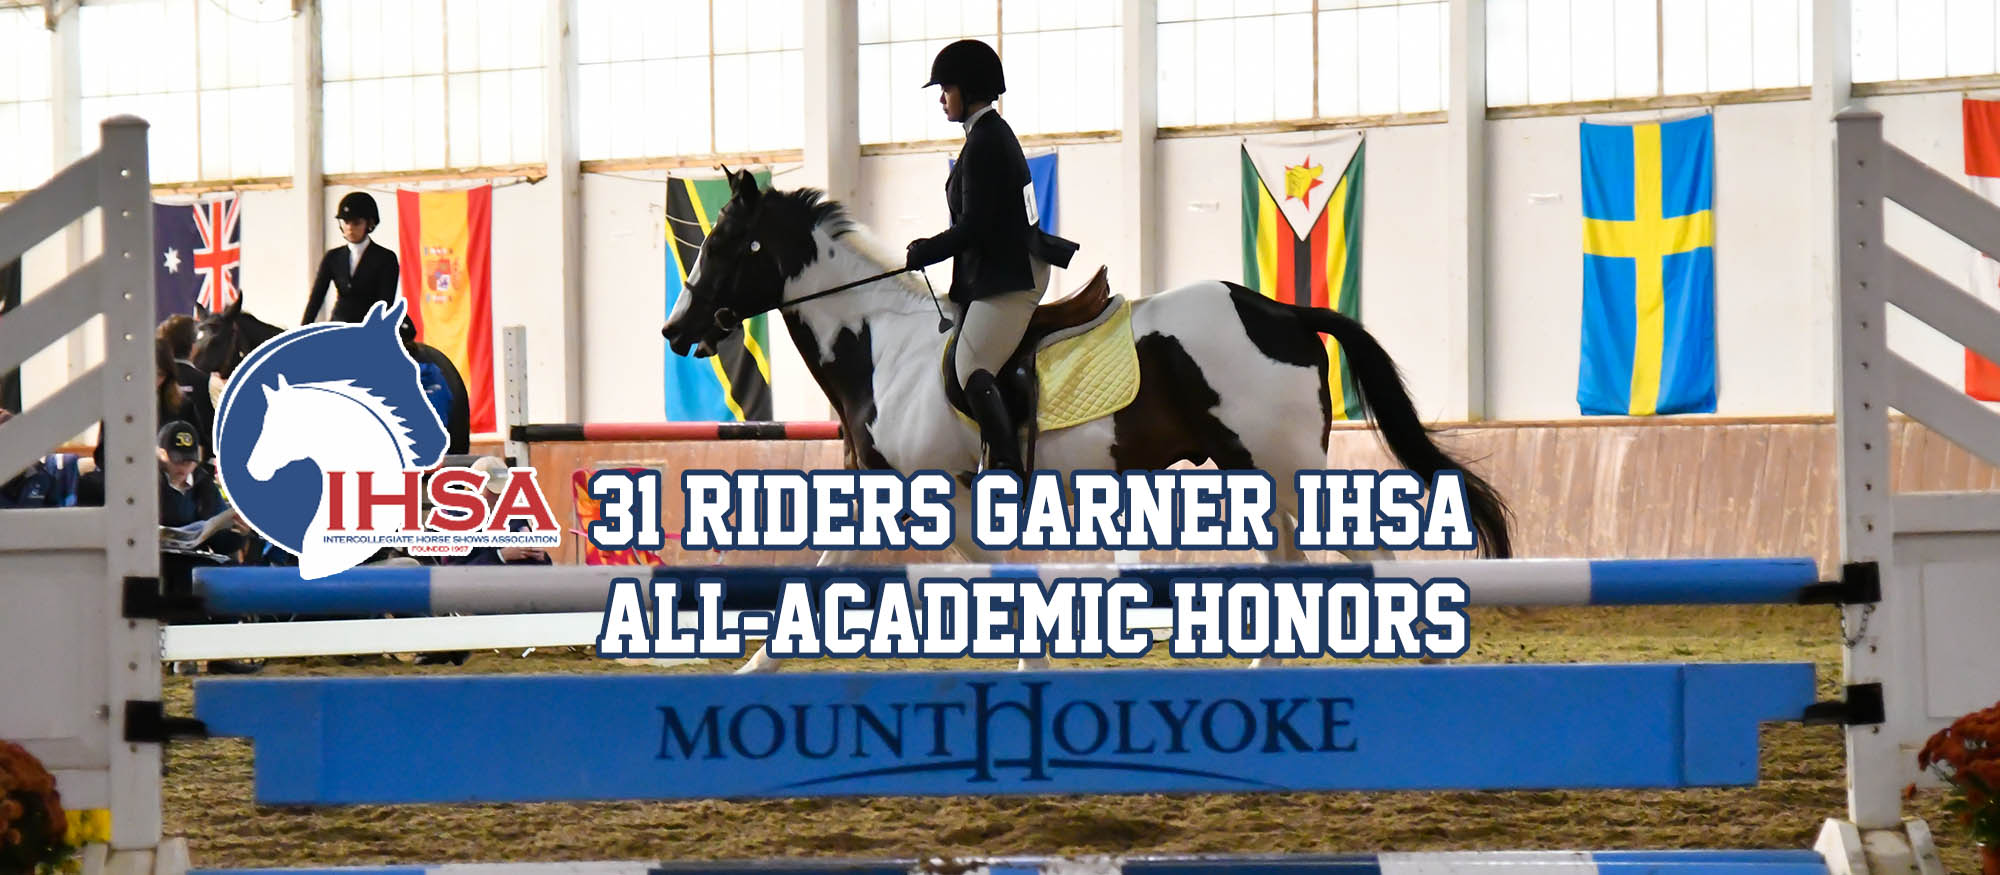 Graphic promoting the 31 riders who earned IHSA All-Academic honors for the 2017-18 season.